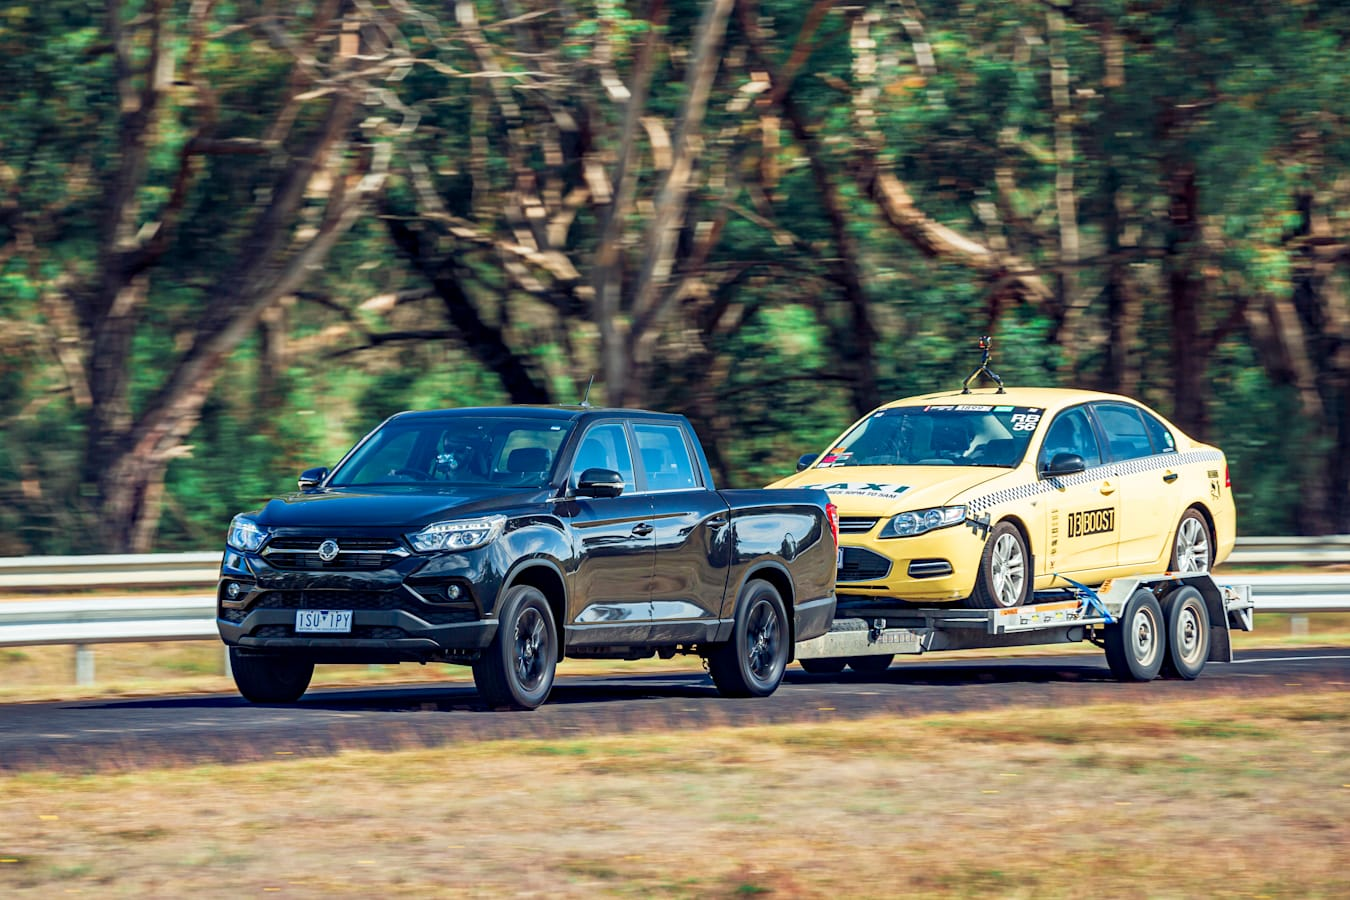 4 X 4 Australia Comparisons 2021 May 21 Ssang Yong Musso Unlimited XLV Towing